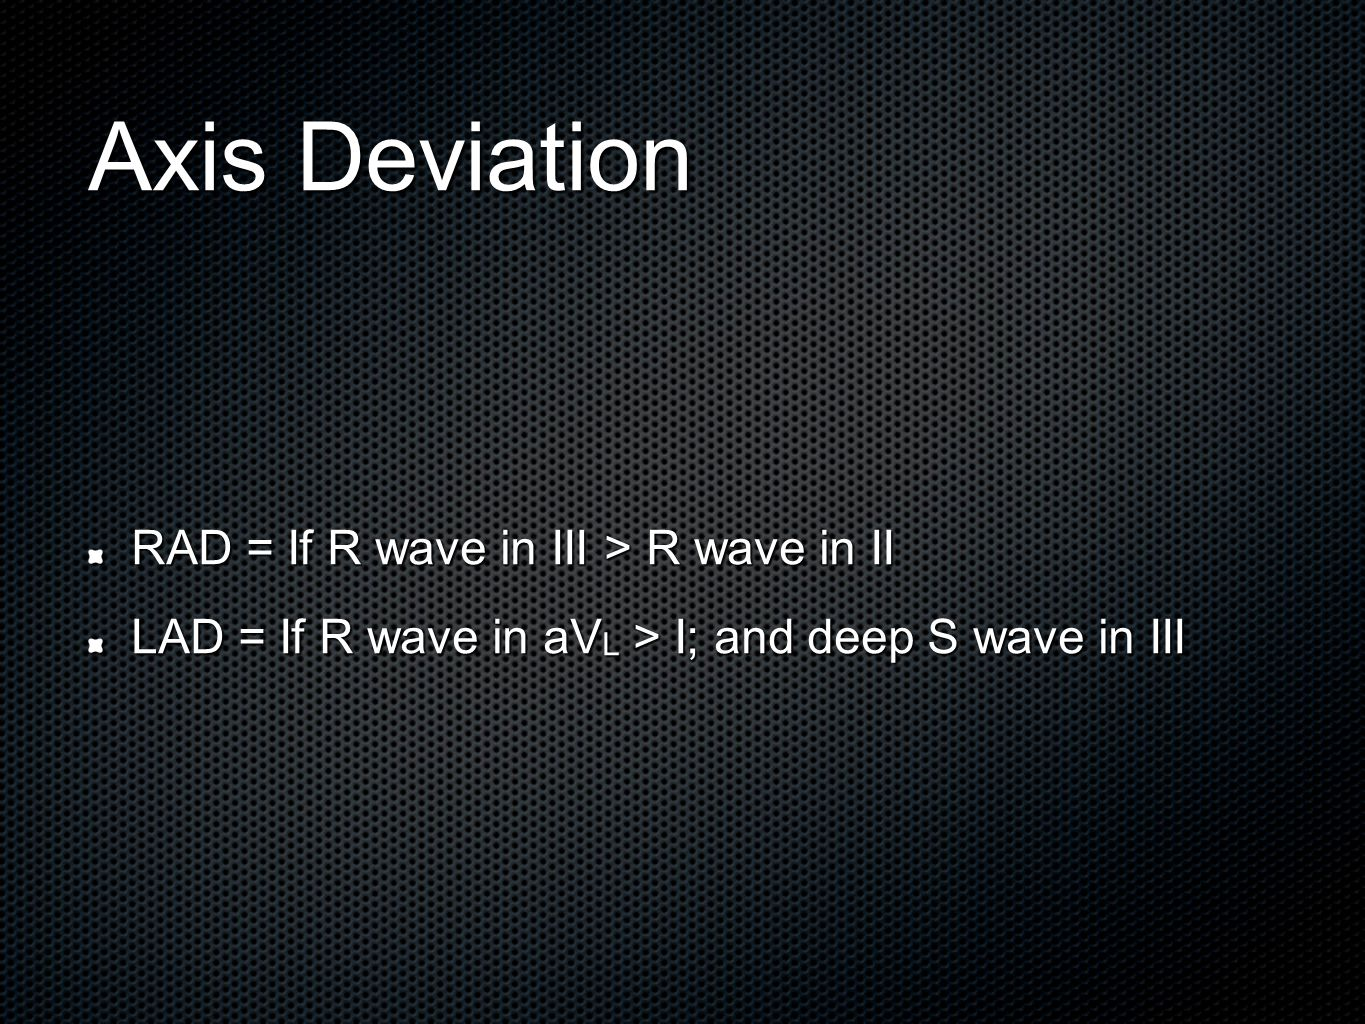 Axis Deviation RAD = If R wave in III > R wave in II